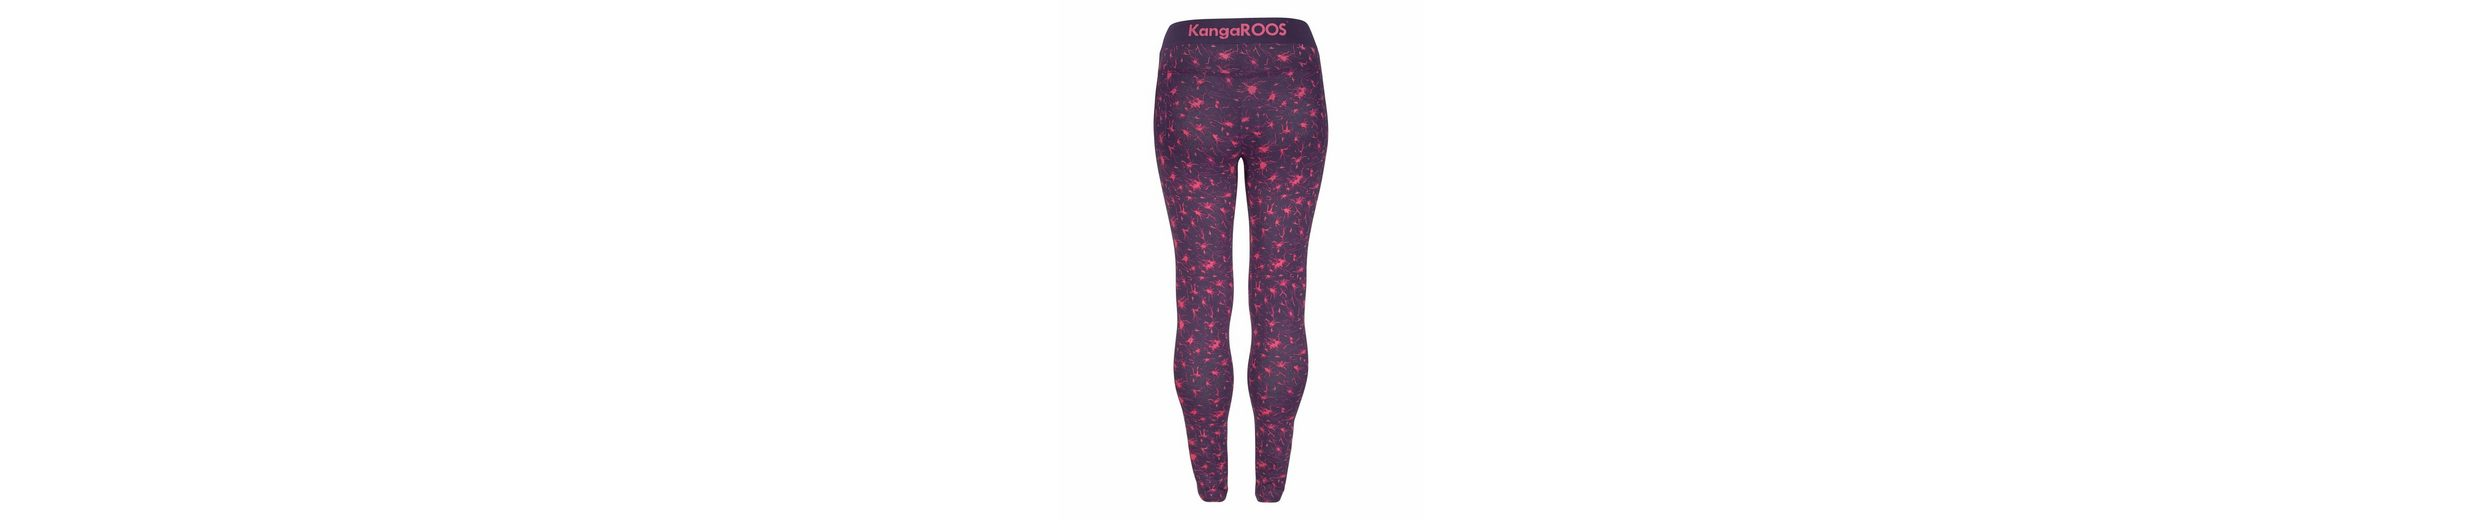 Leggings Leggings Leggings Kangaroos Kangaroos Leggings Leggings Kangaroos Kangaroos Kangaroos Kangaroos Leggings qCnfd